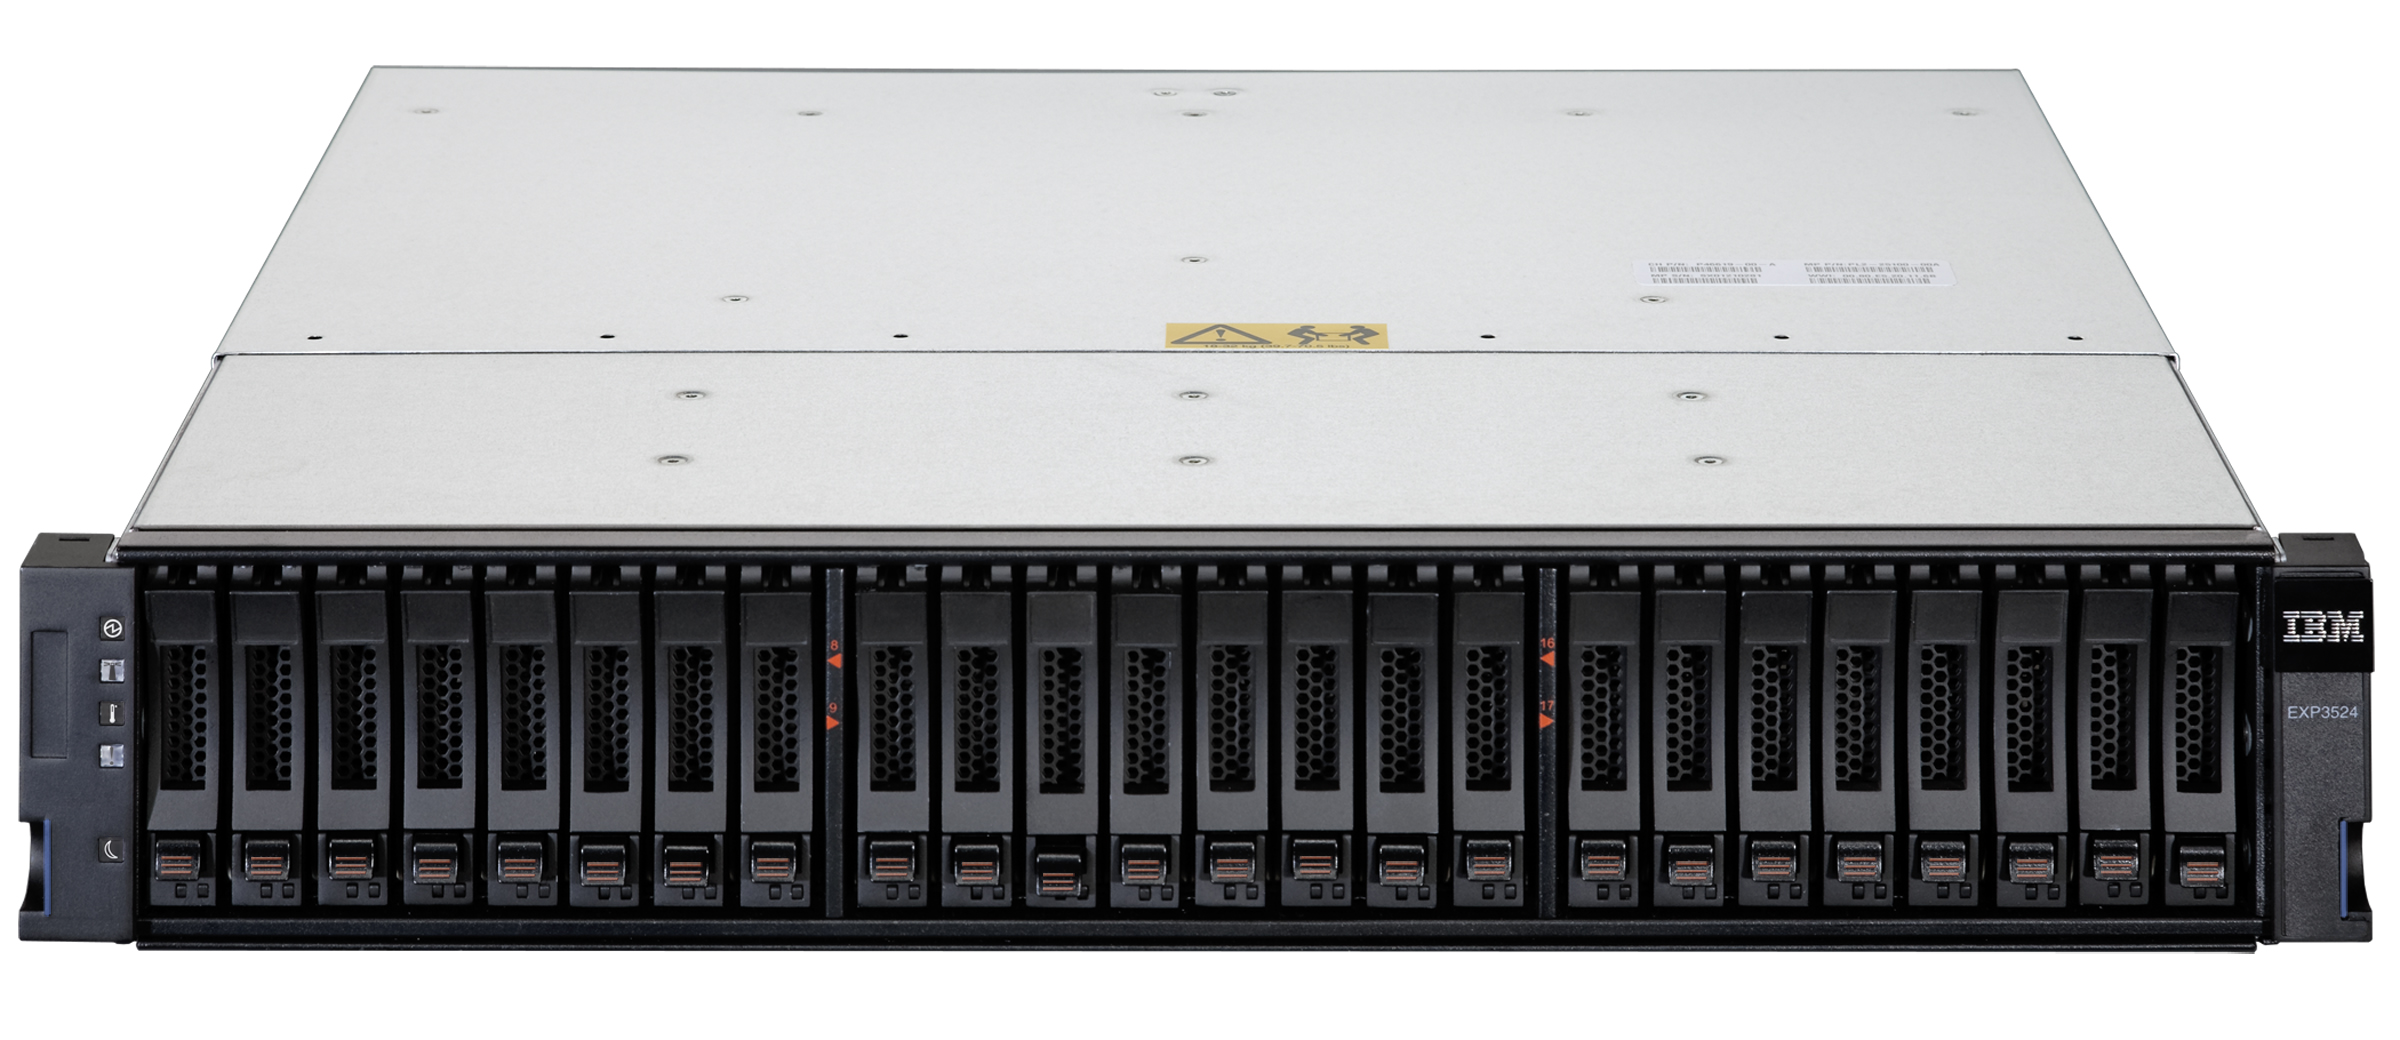 JBOD система хранения данных (СХД) IBM System Storage EXP3524 Express Storage Enclosure - корпус Rackmount 2U, 24 отсека SFF 2.5